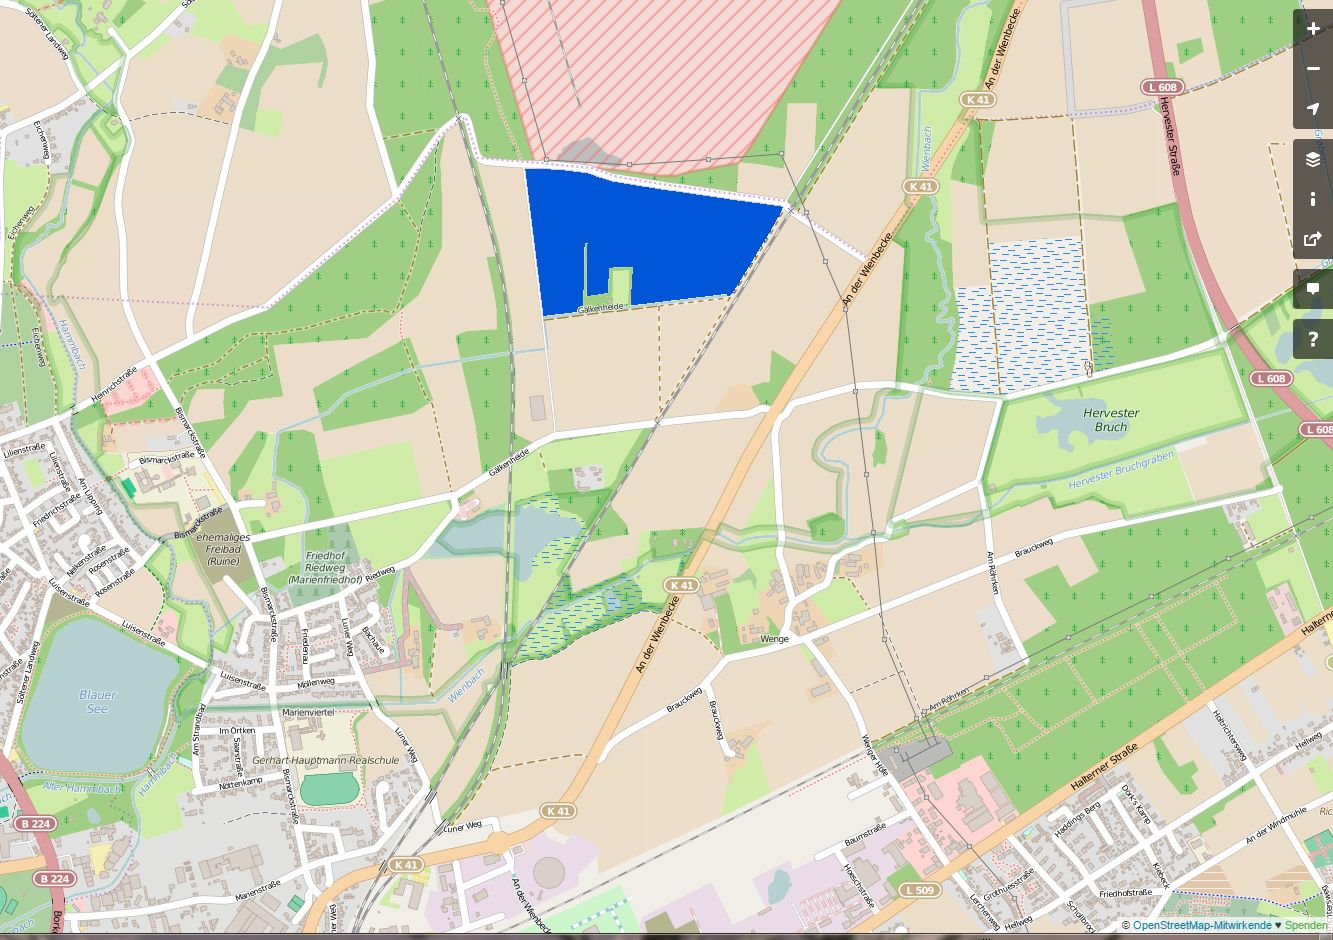 Gälkenheide-Windkraft-osm